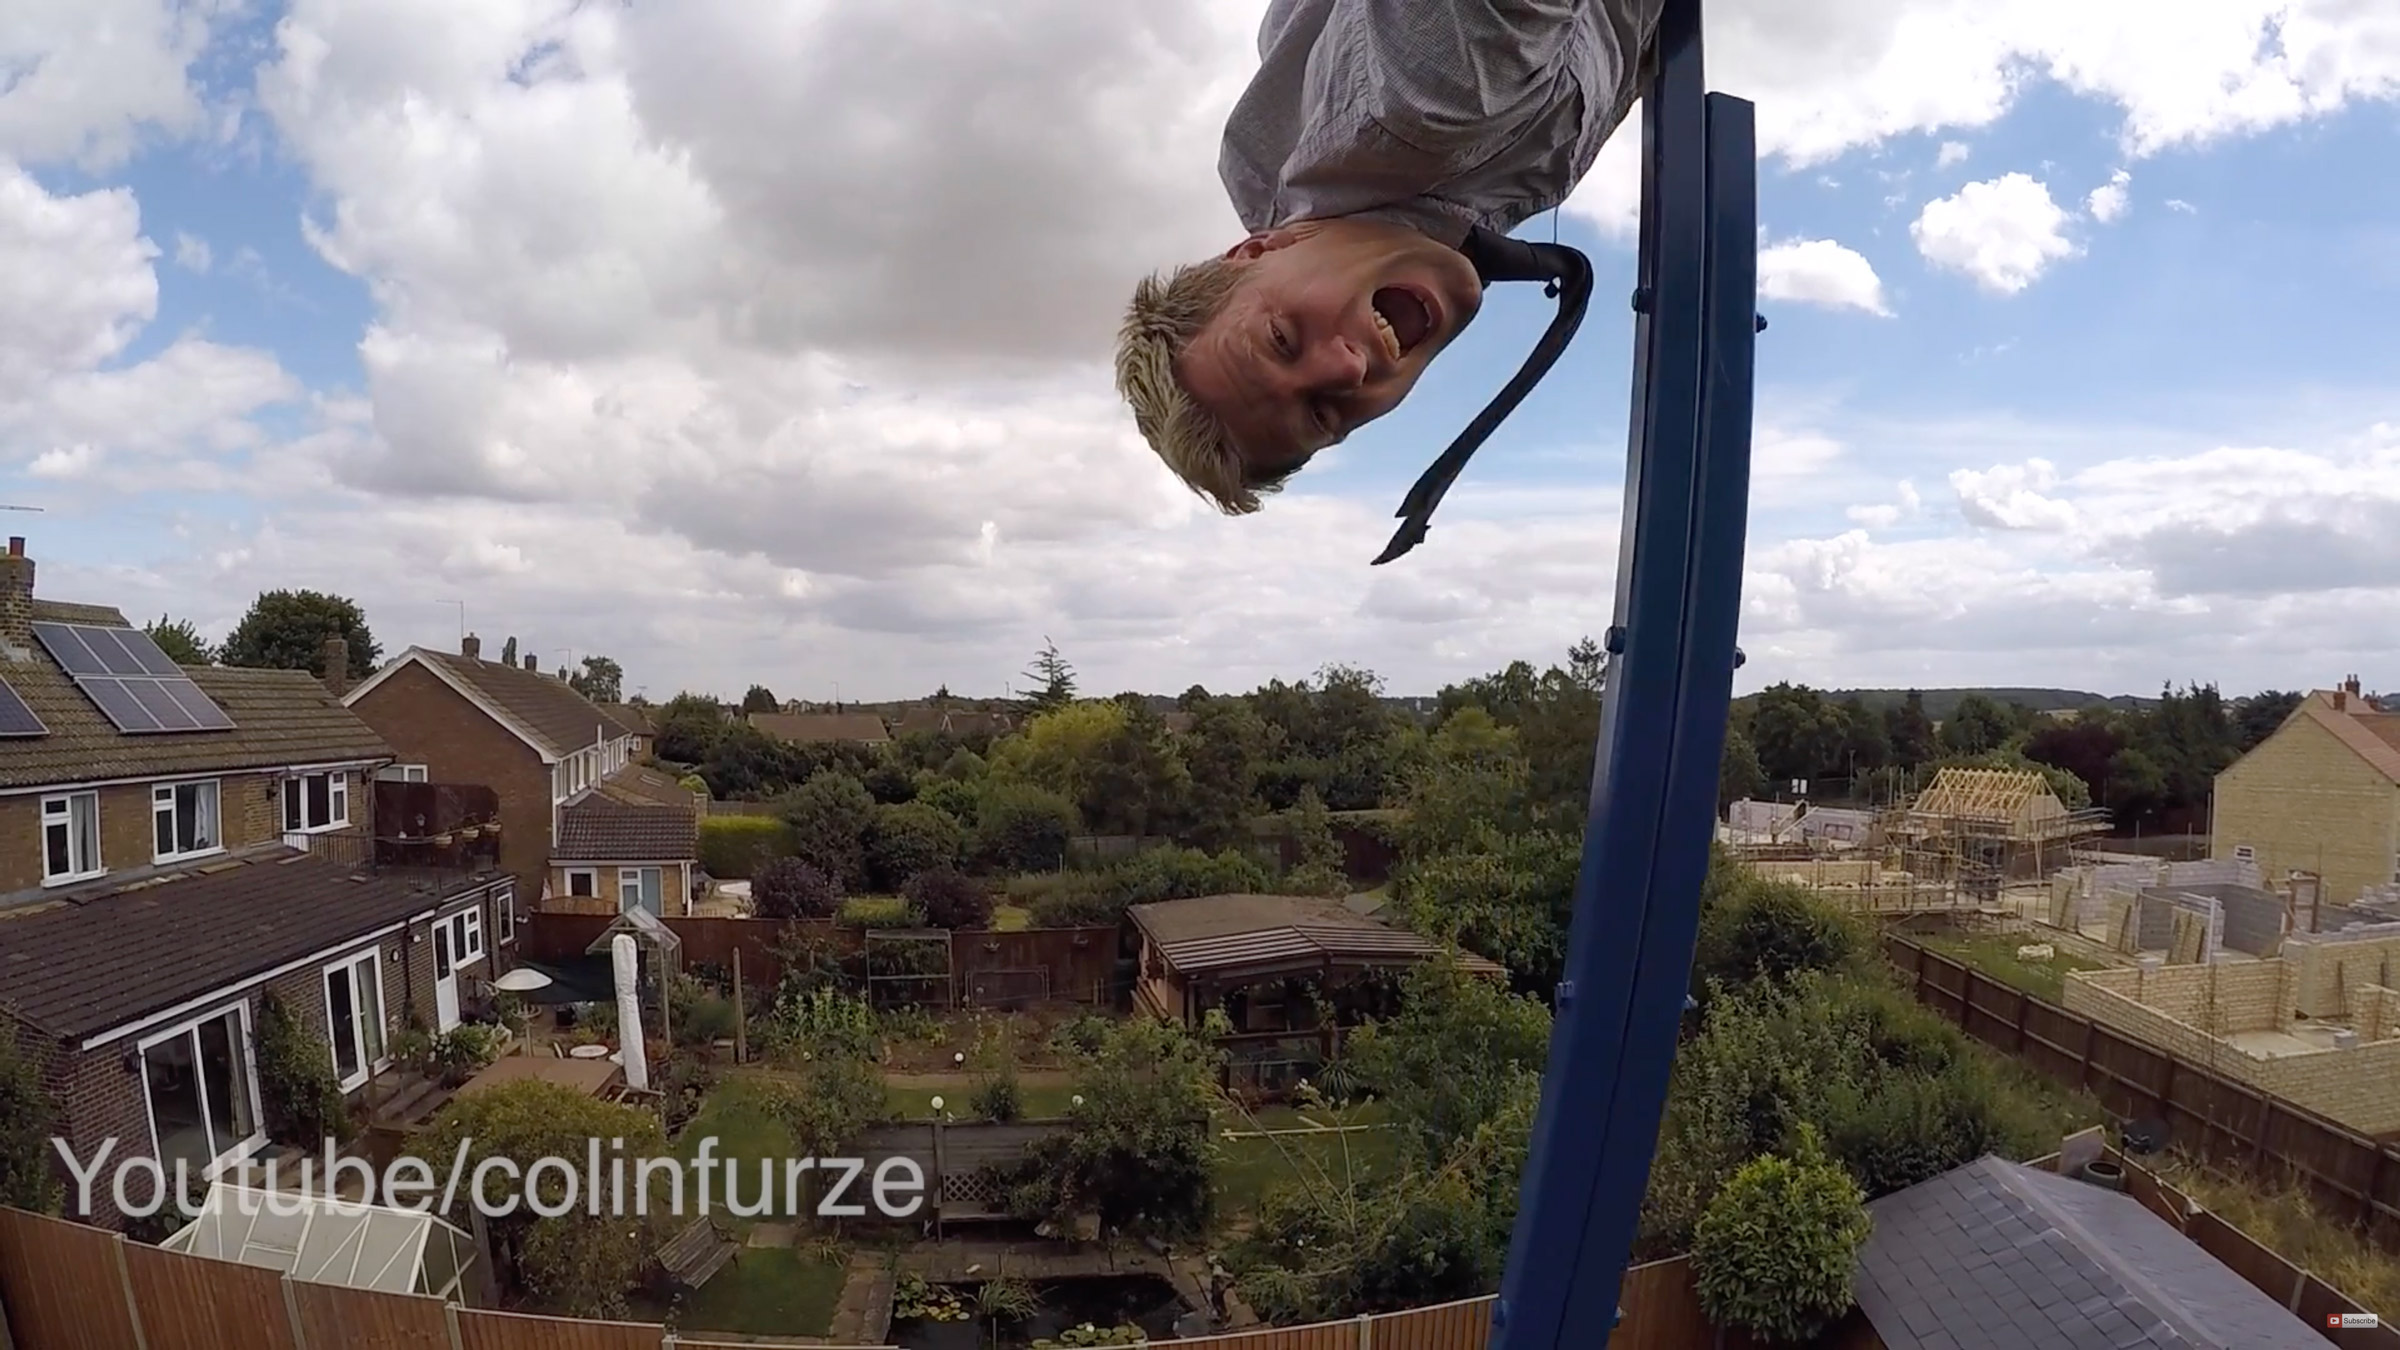 A Backyard 360-Degree Swing (Video)